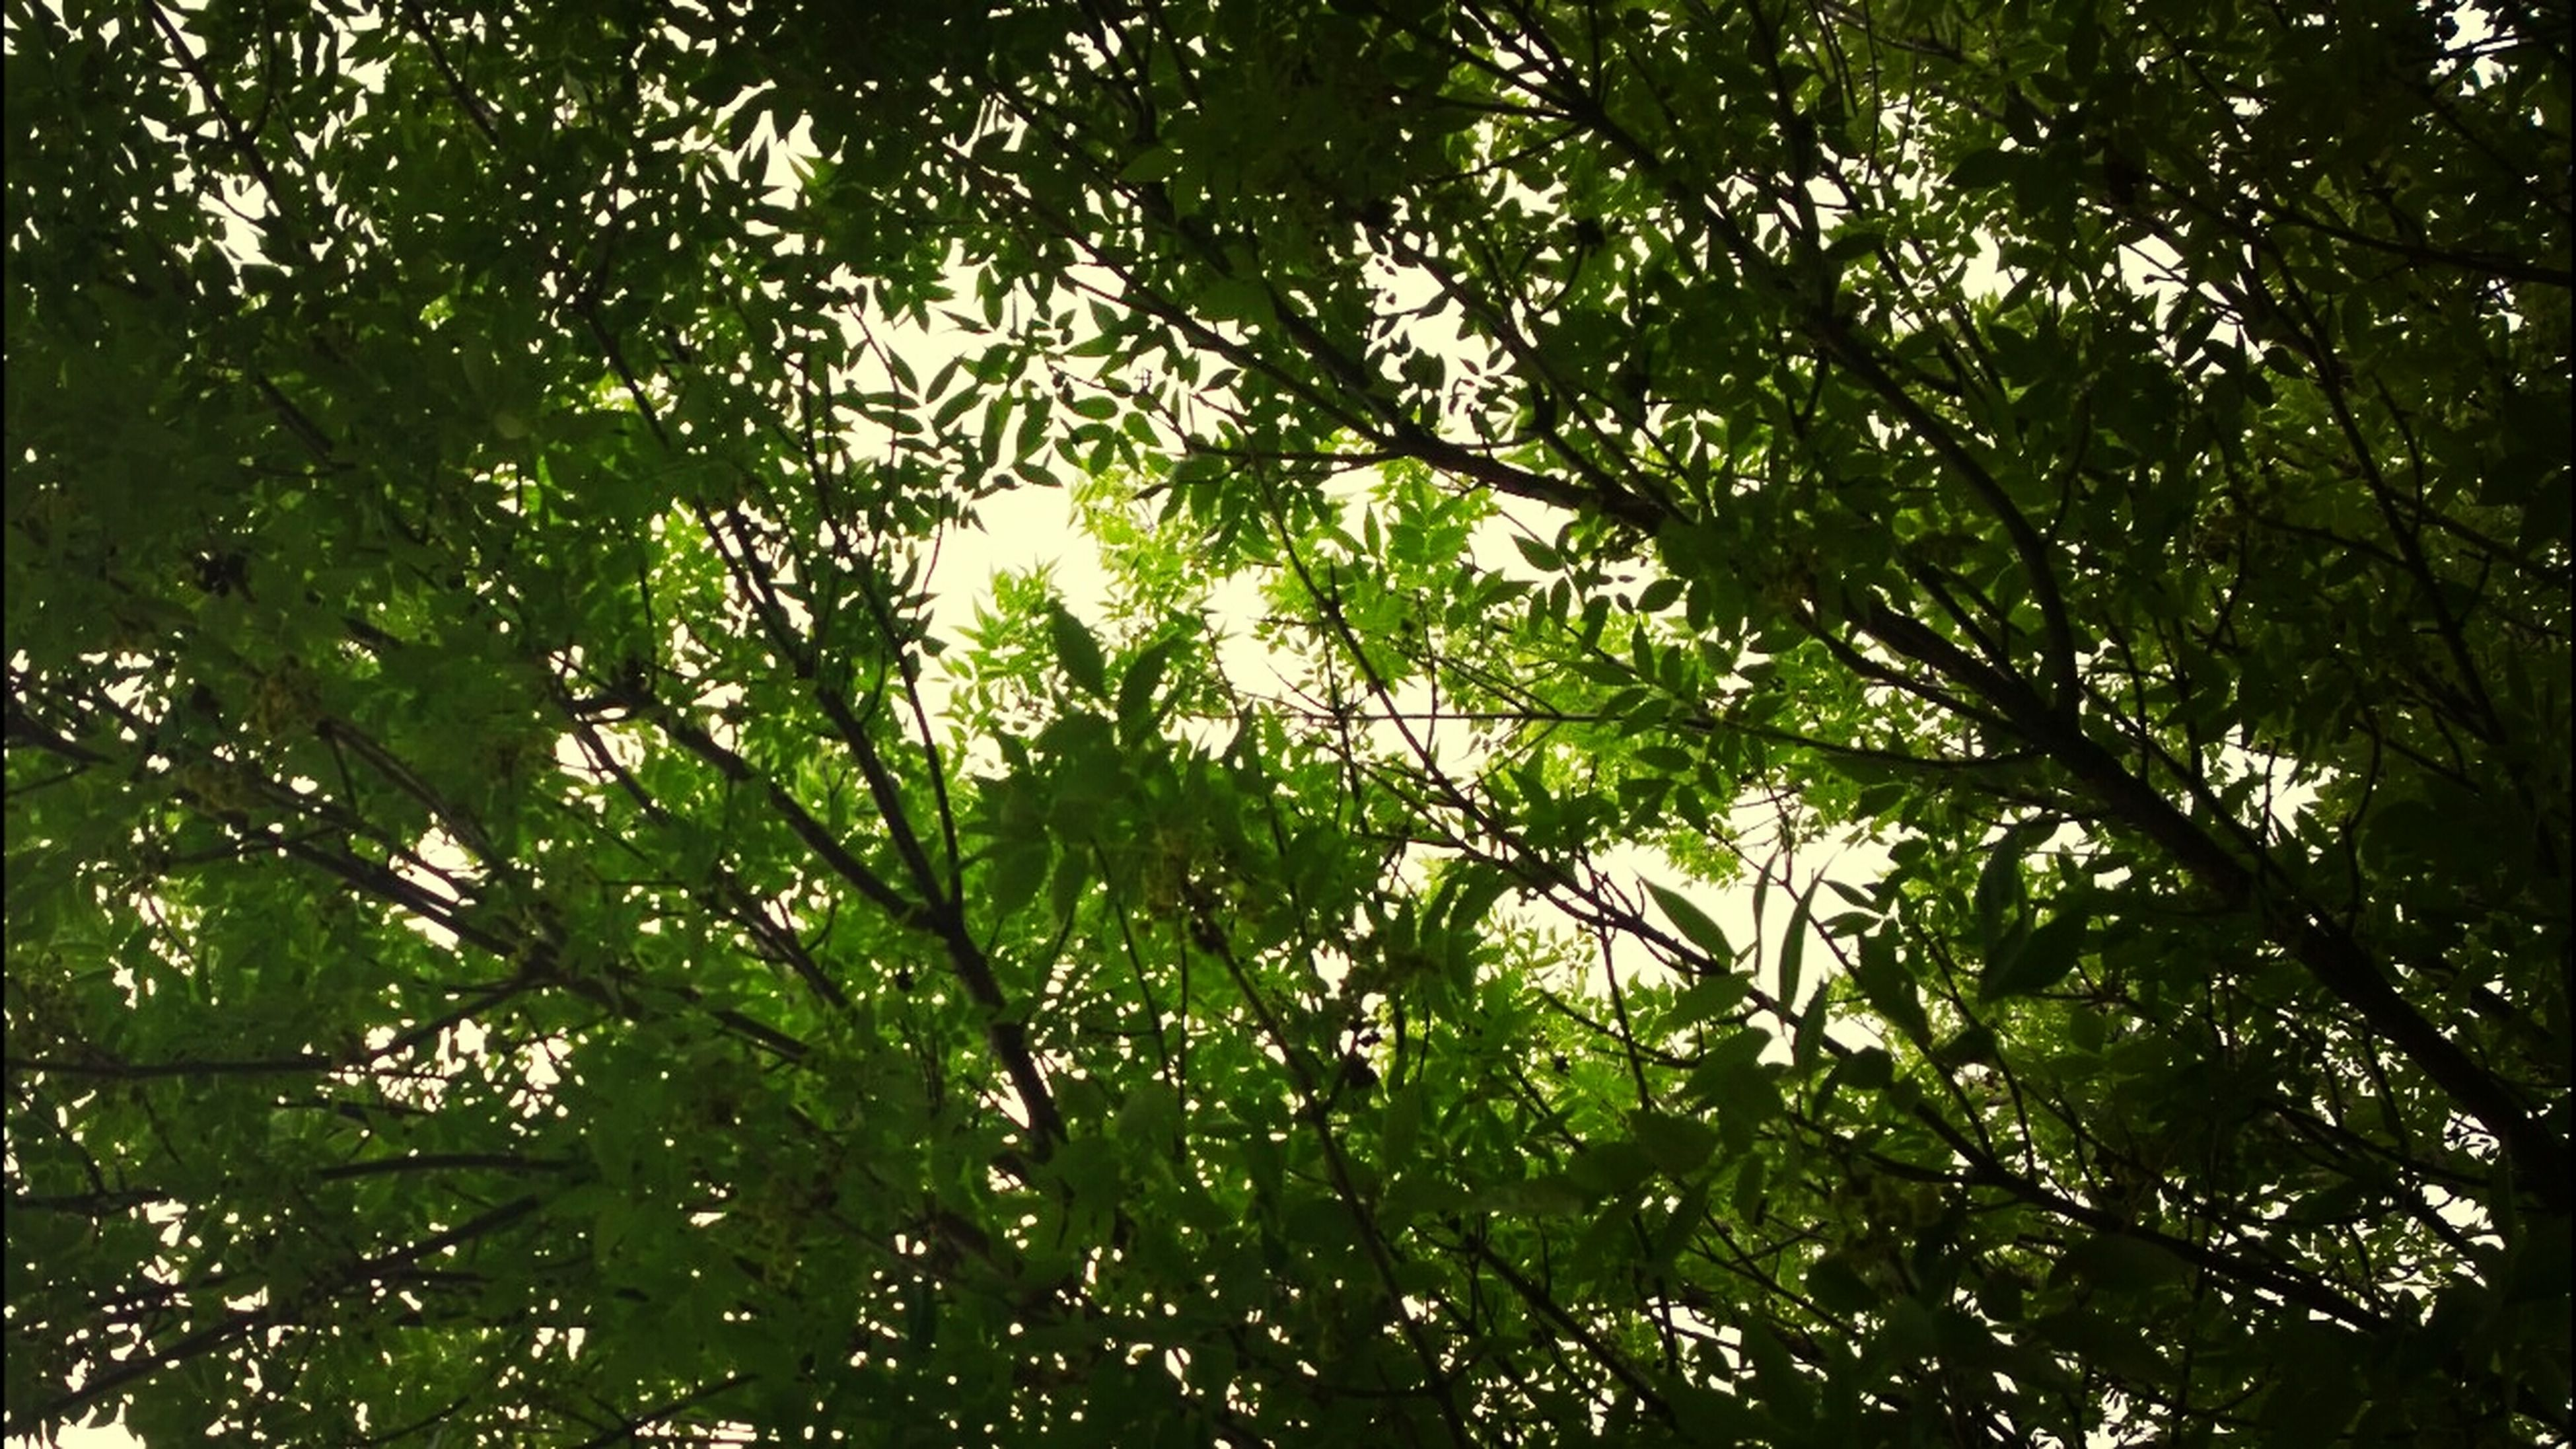 tree, growth, branch, low angle view, tranquility, nature, forest, beauty in nature, leaf, green color, backgrounds, full frame, day, outdoors, plant, no people, lush foliage, tranquil scene, sky, scenics